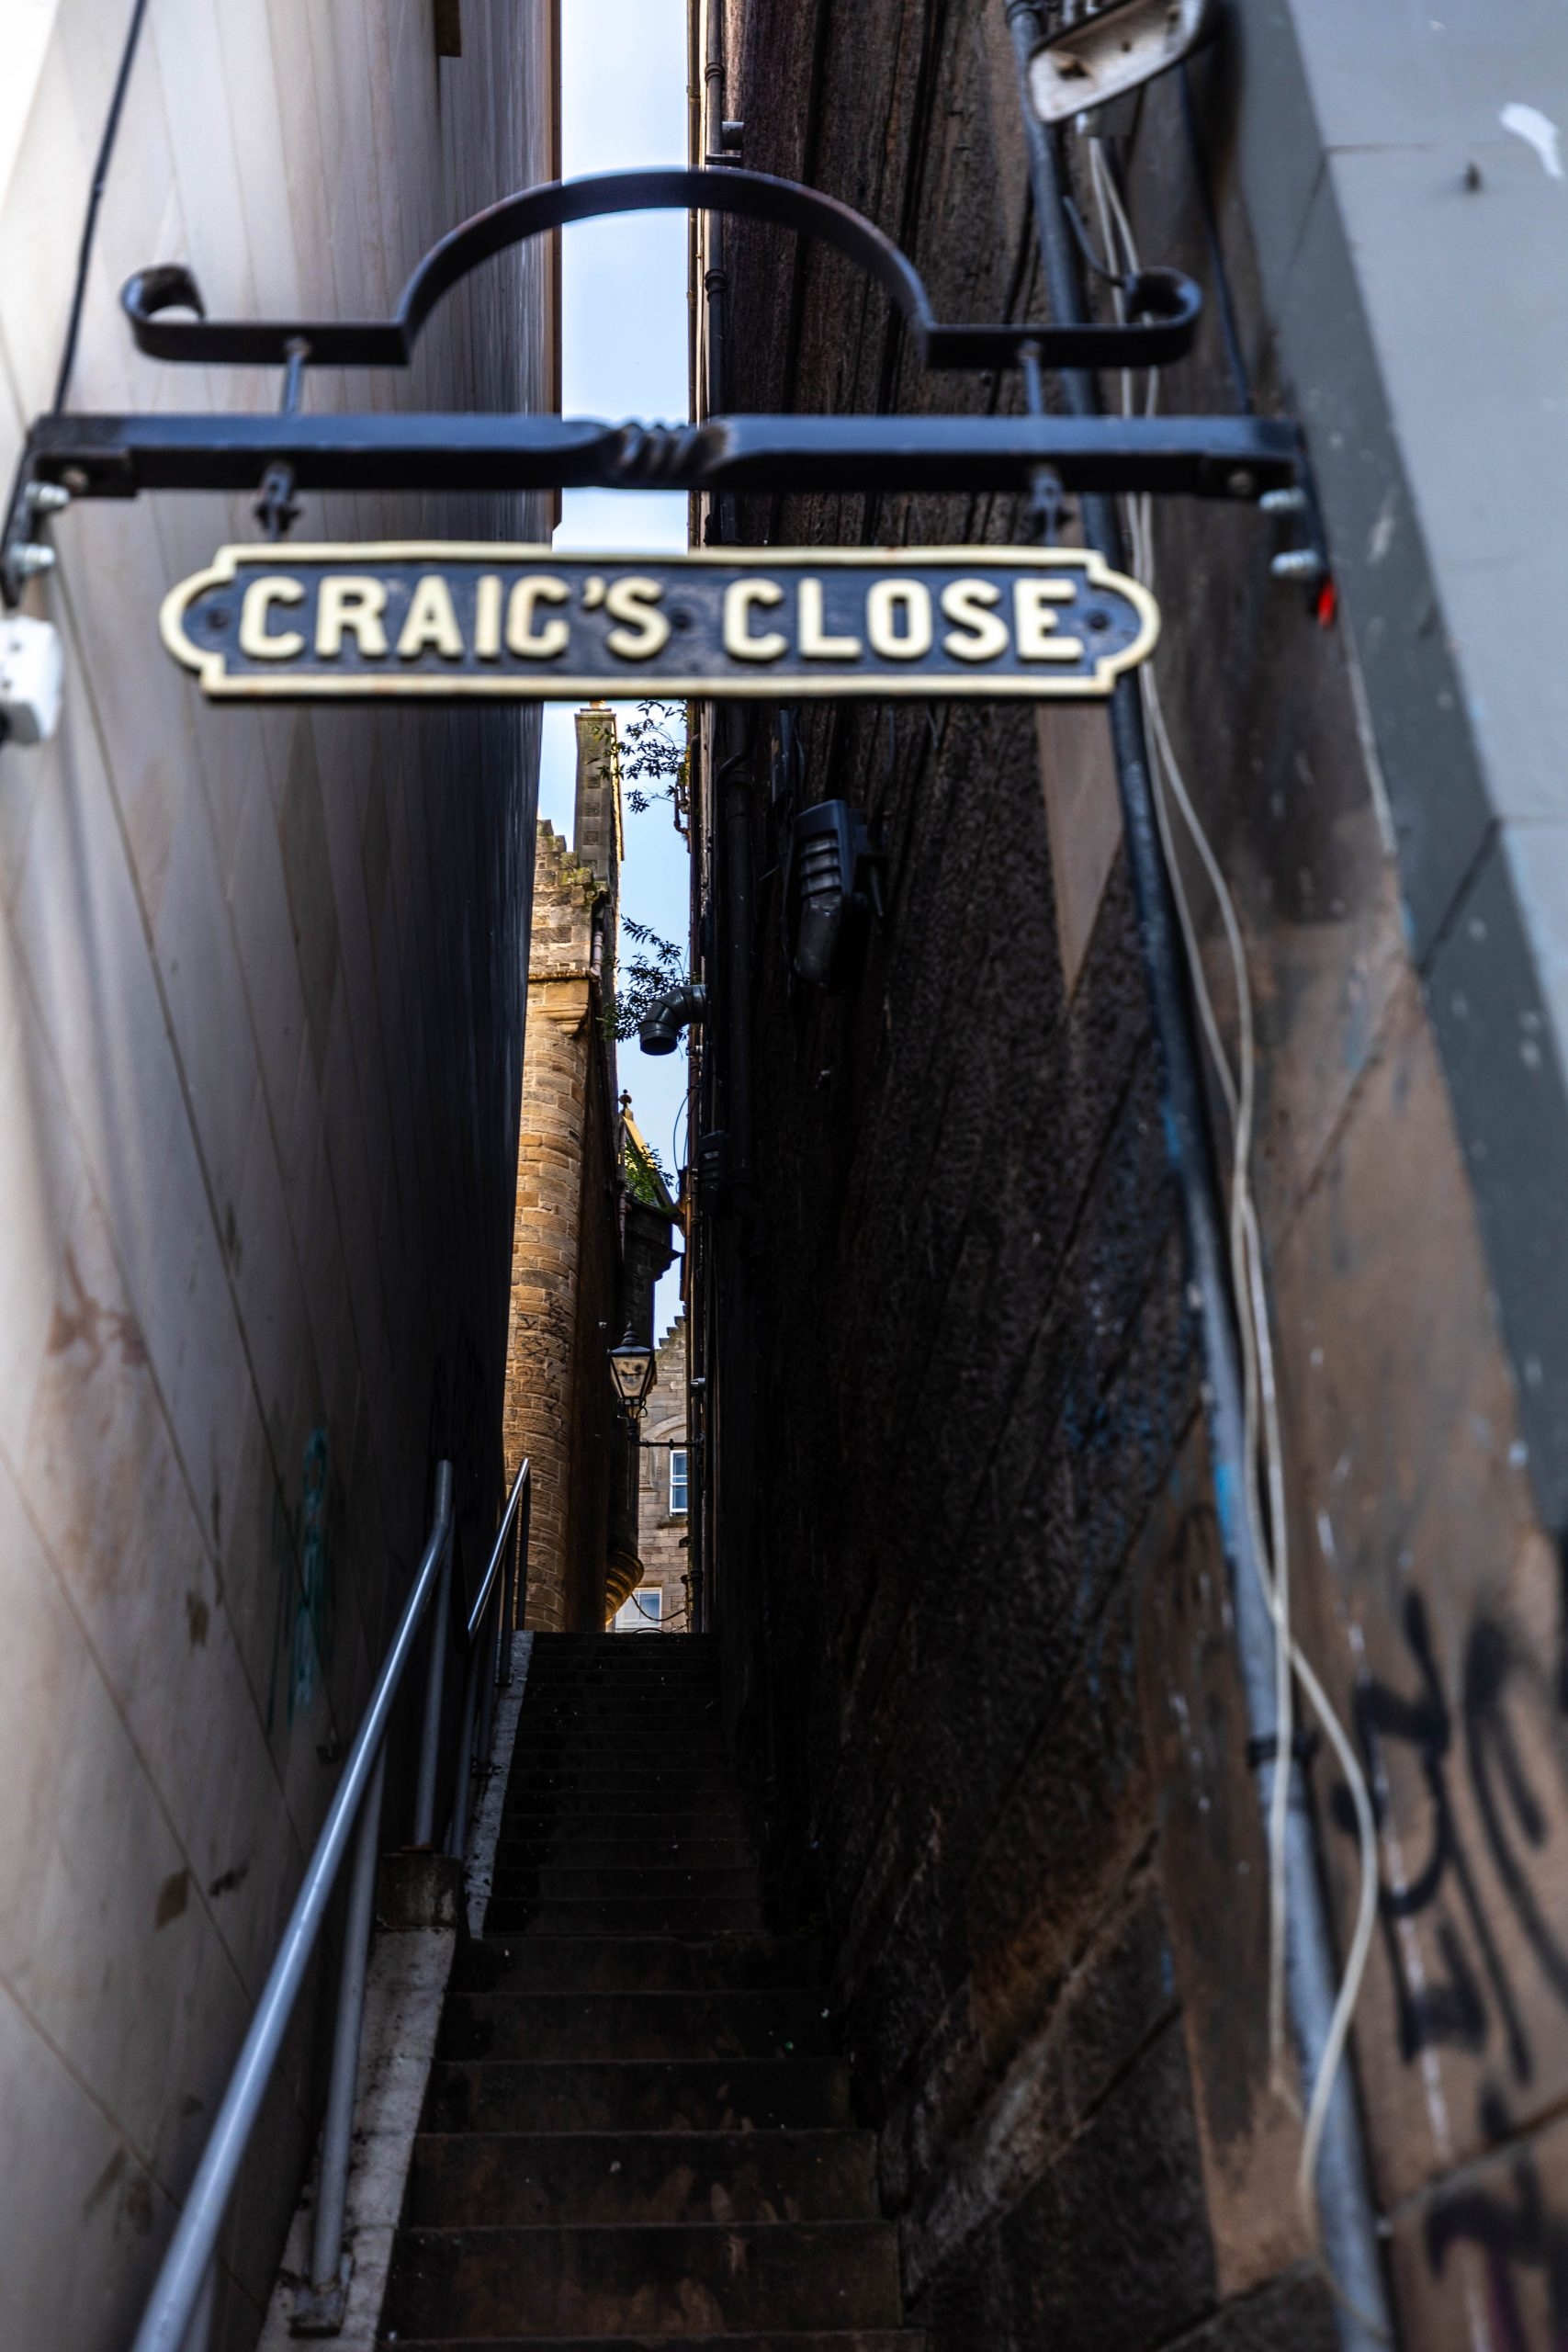 Craig's Close in Edinburgh Old Town Edinburgh the Luxury Travel Guide by Annie Fairfax Where to Eat What to Do Where to Stay Site Seeing in Edinburgh Honeymoon Vacation Ideas